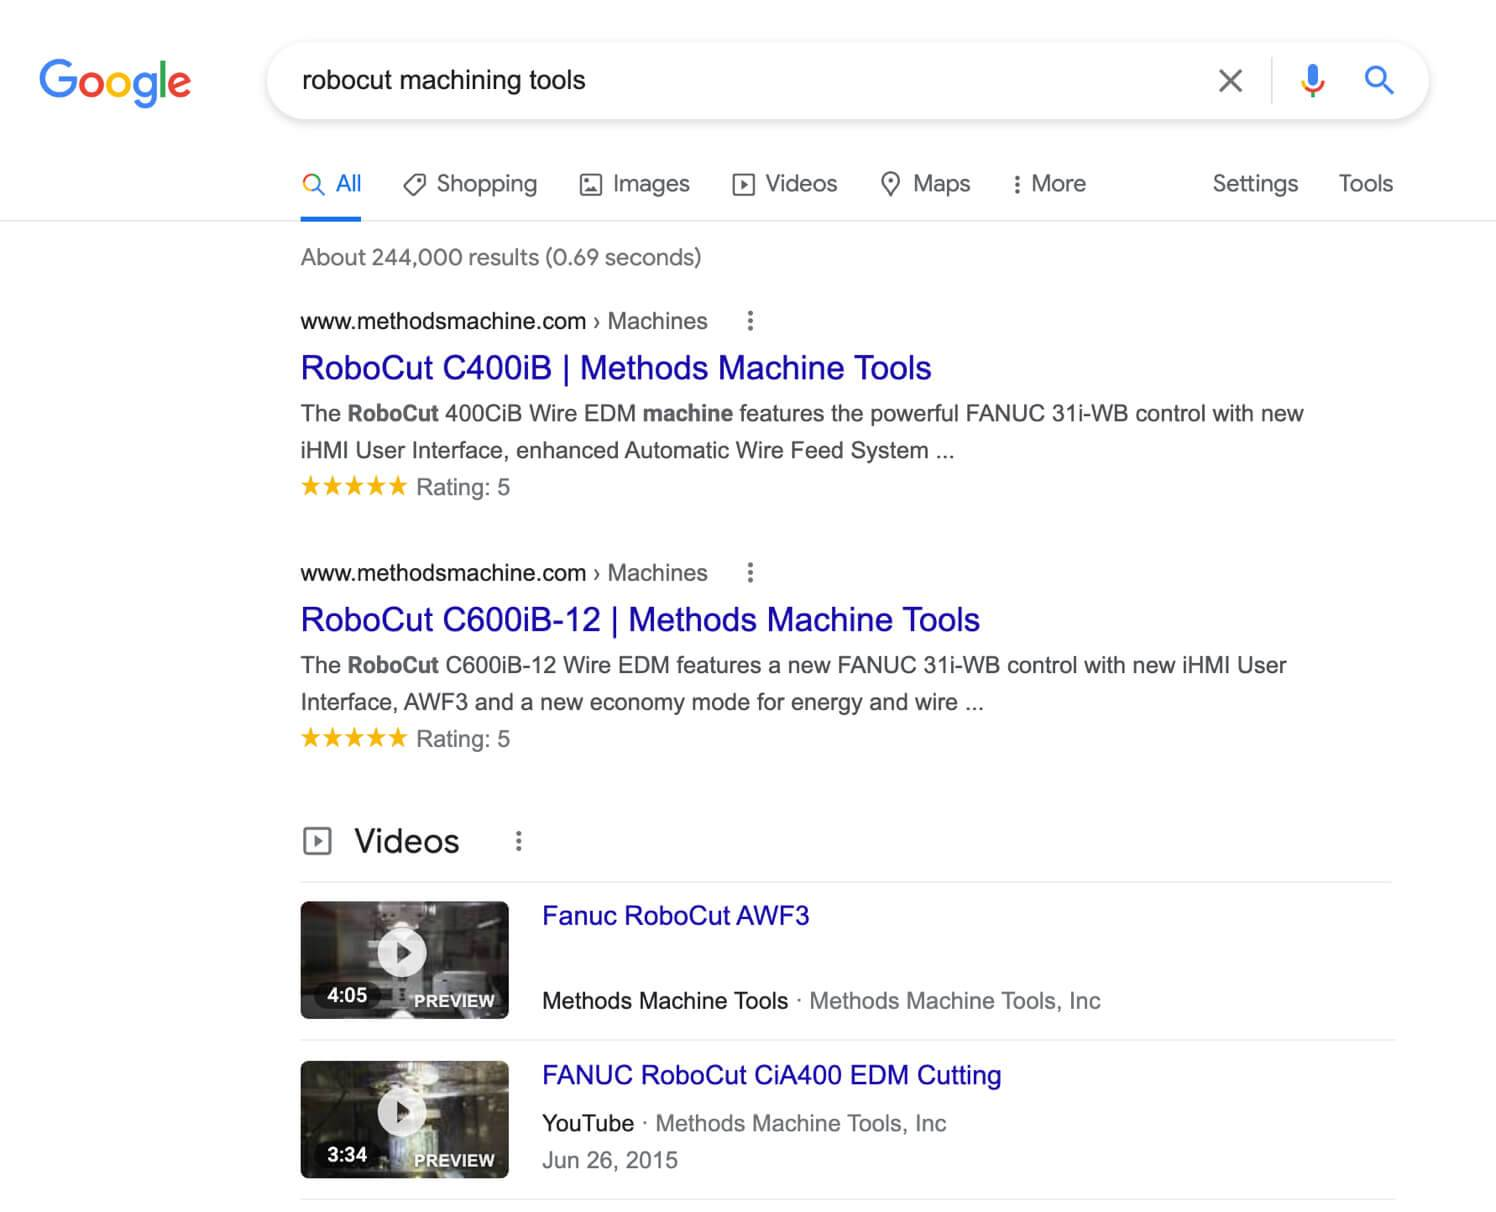 Google results for robocut machining tools